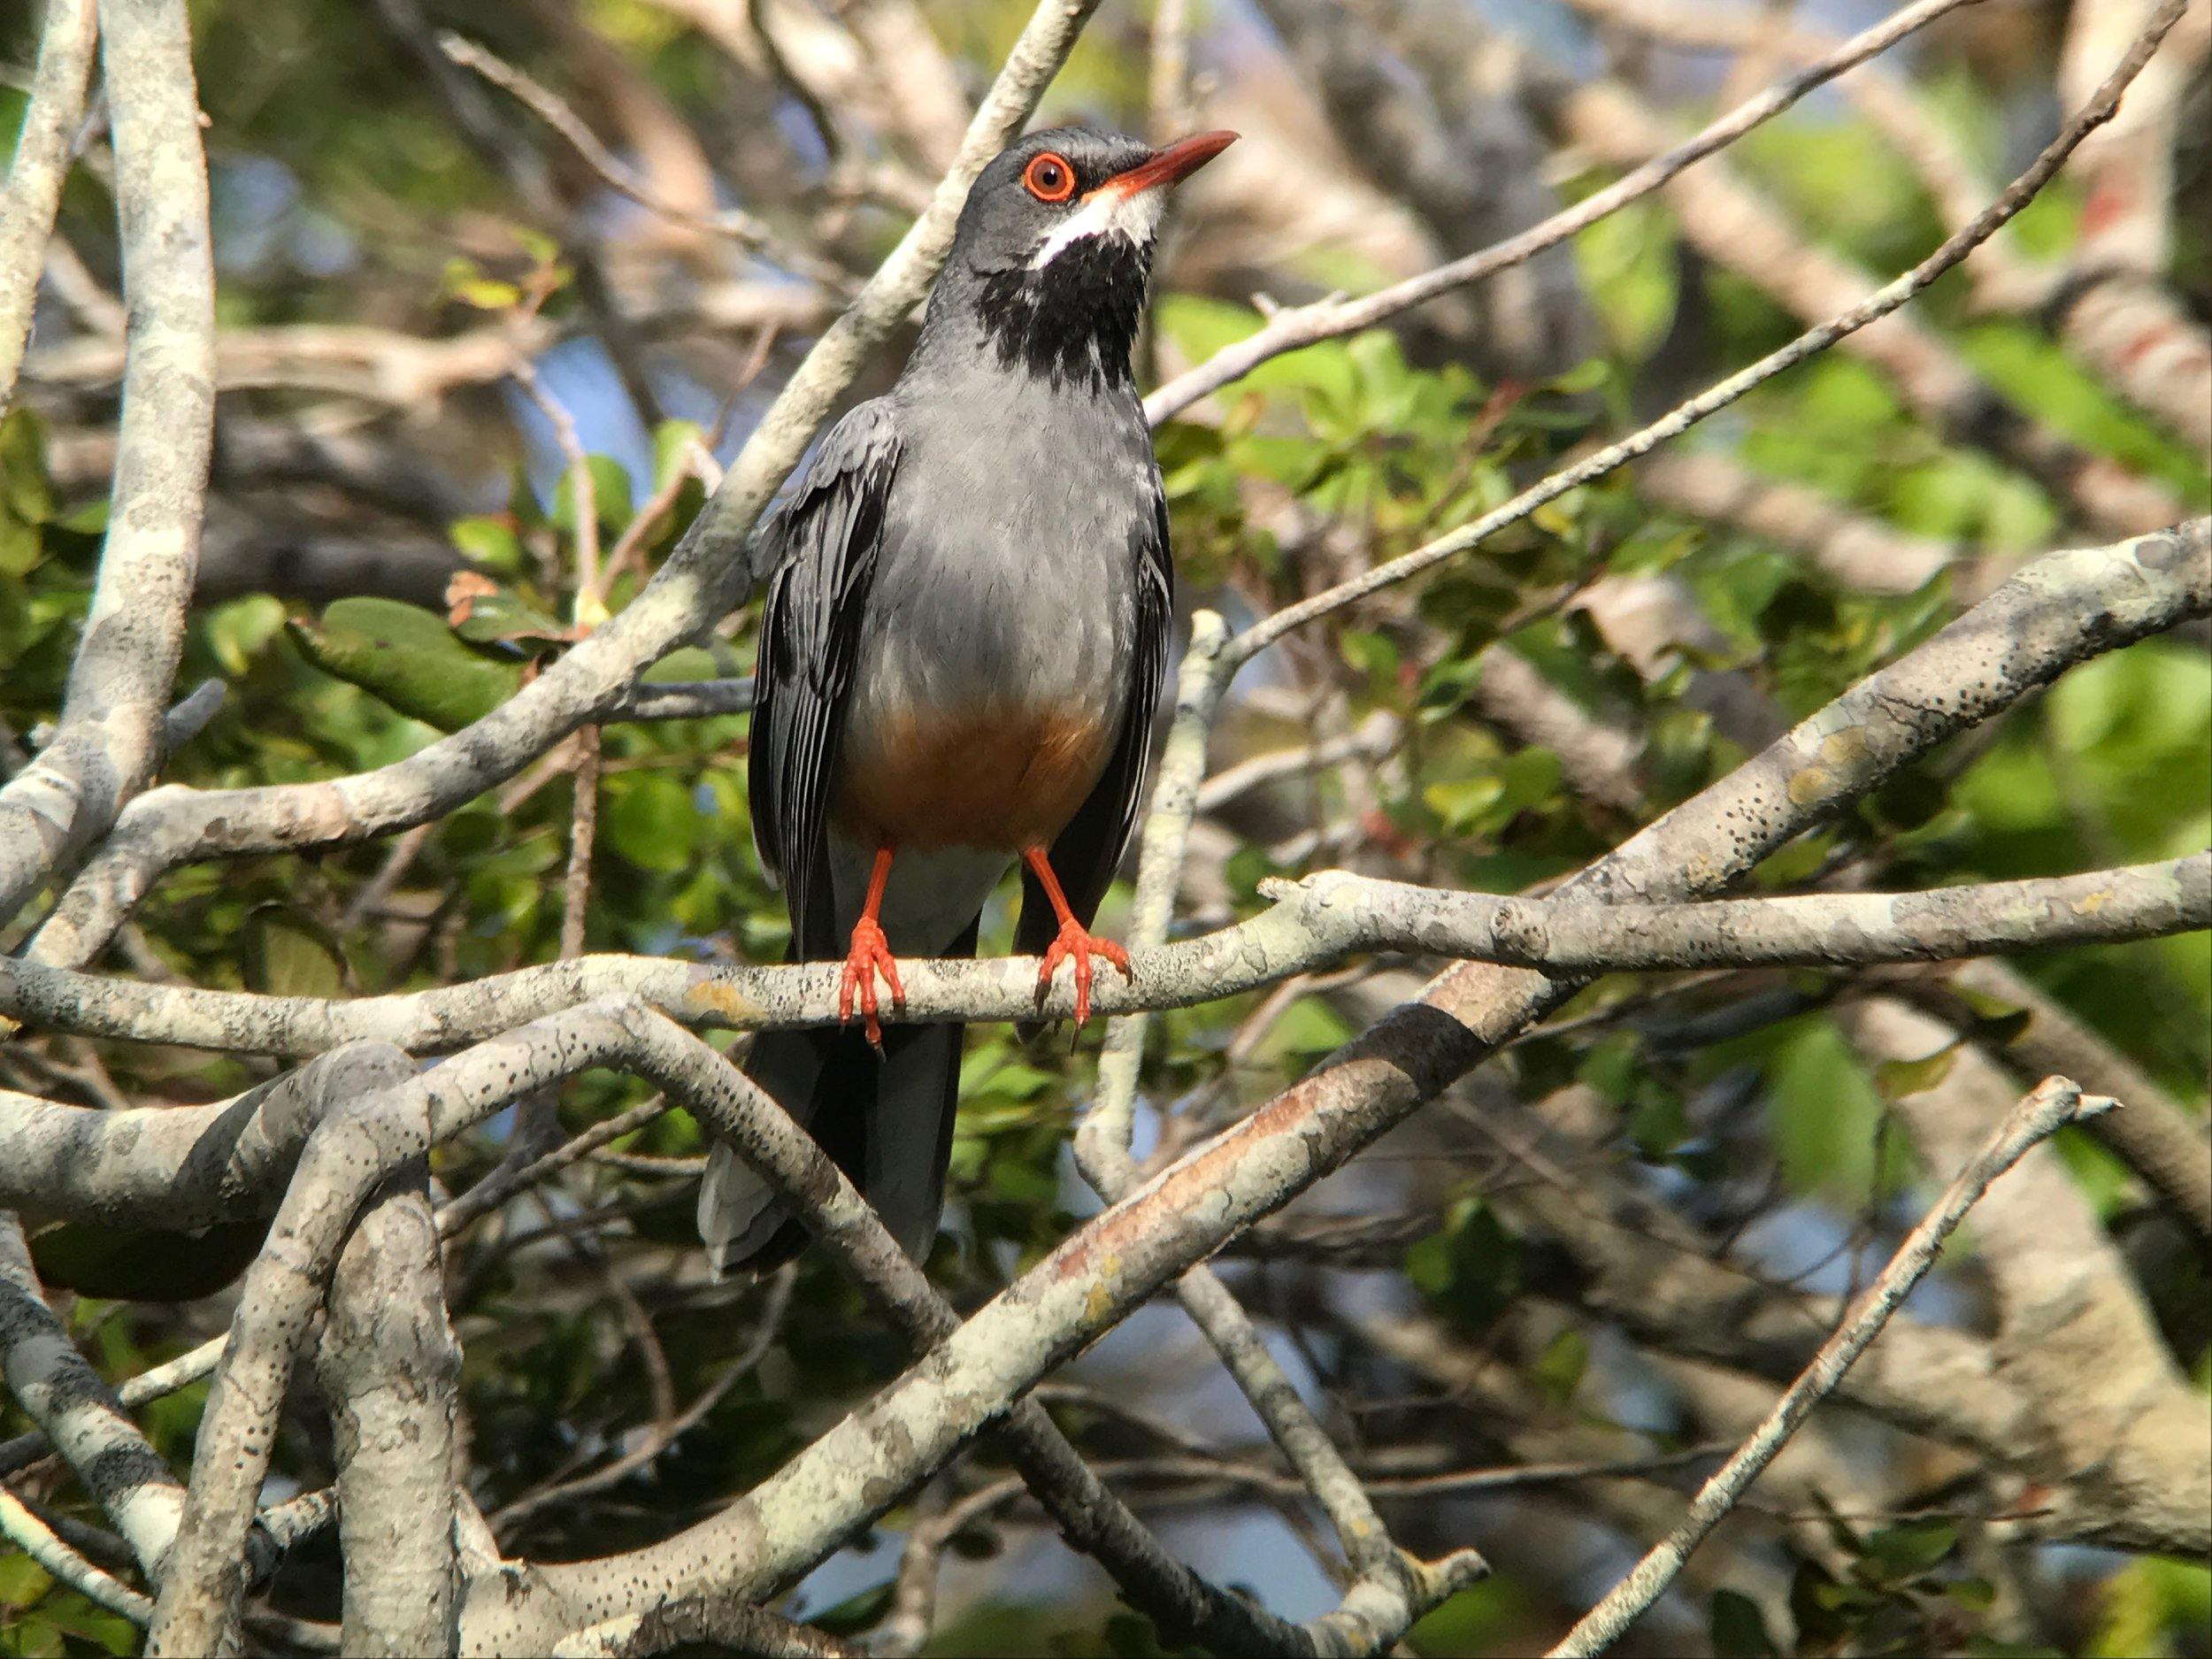 Red-legged Thrush is probably the most common bird we saw on the island.